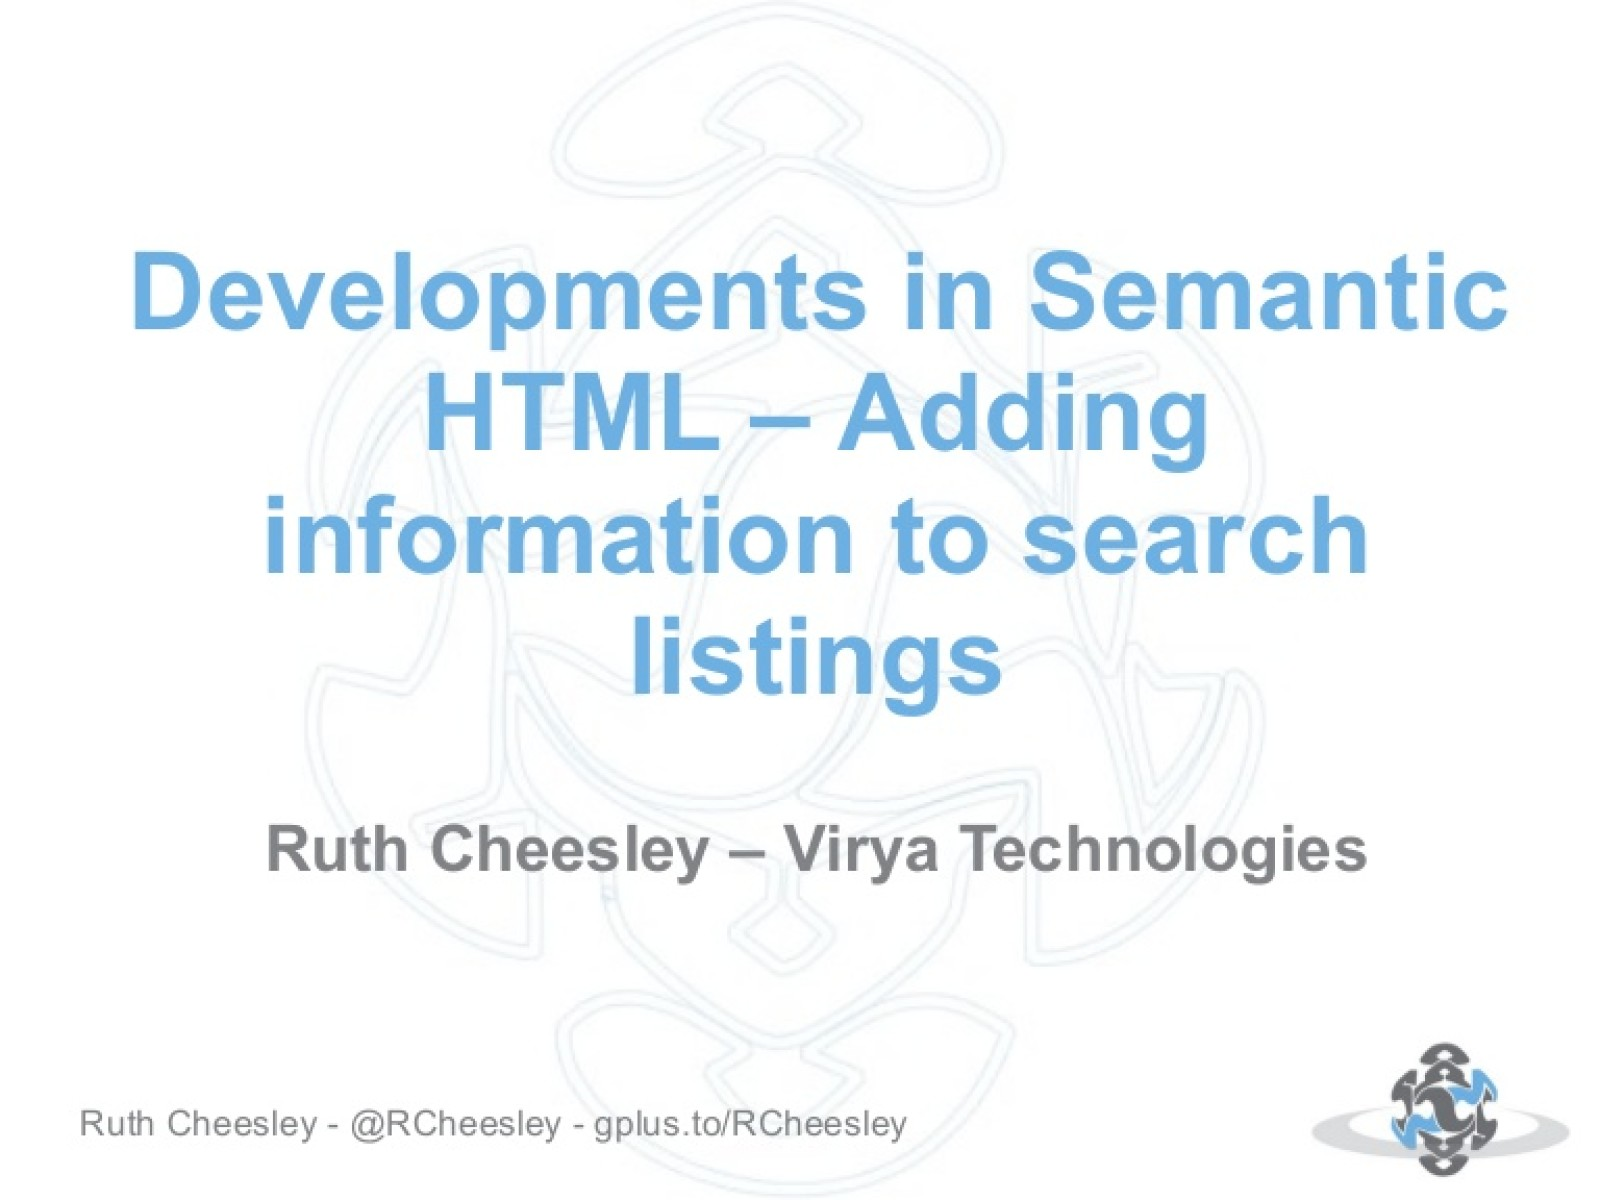 Developments in semantic HTML - adding information to search listings